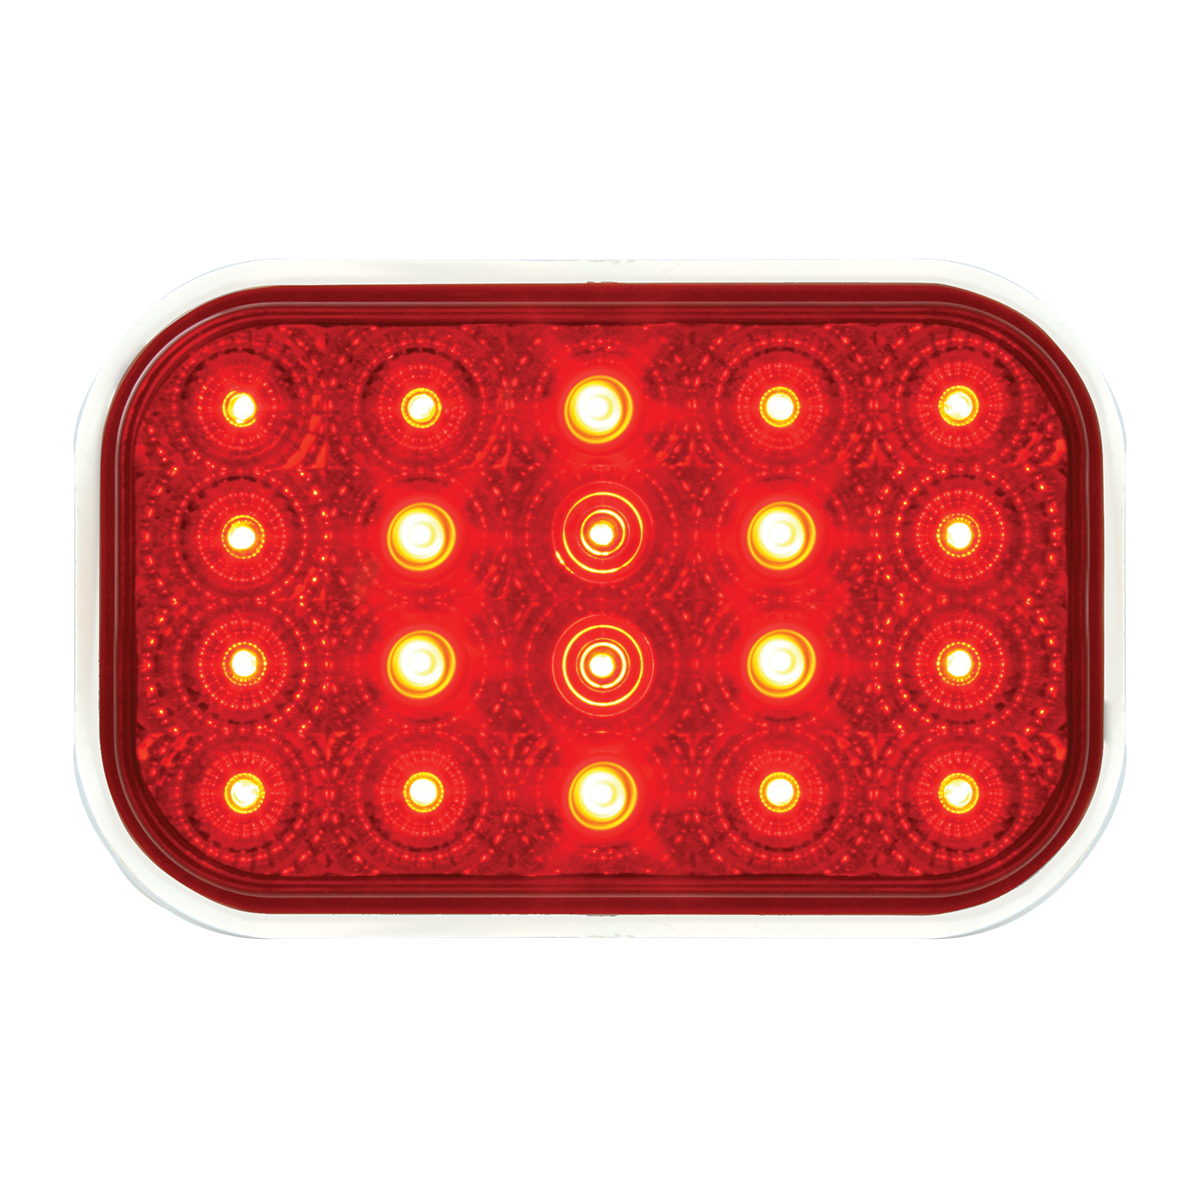 #77013 Rectangular Spyder LED Flat Red/Red Light